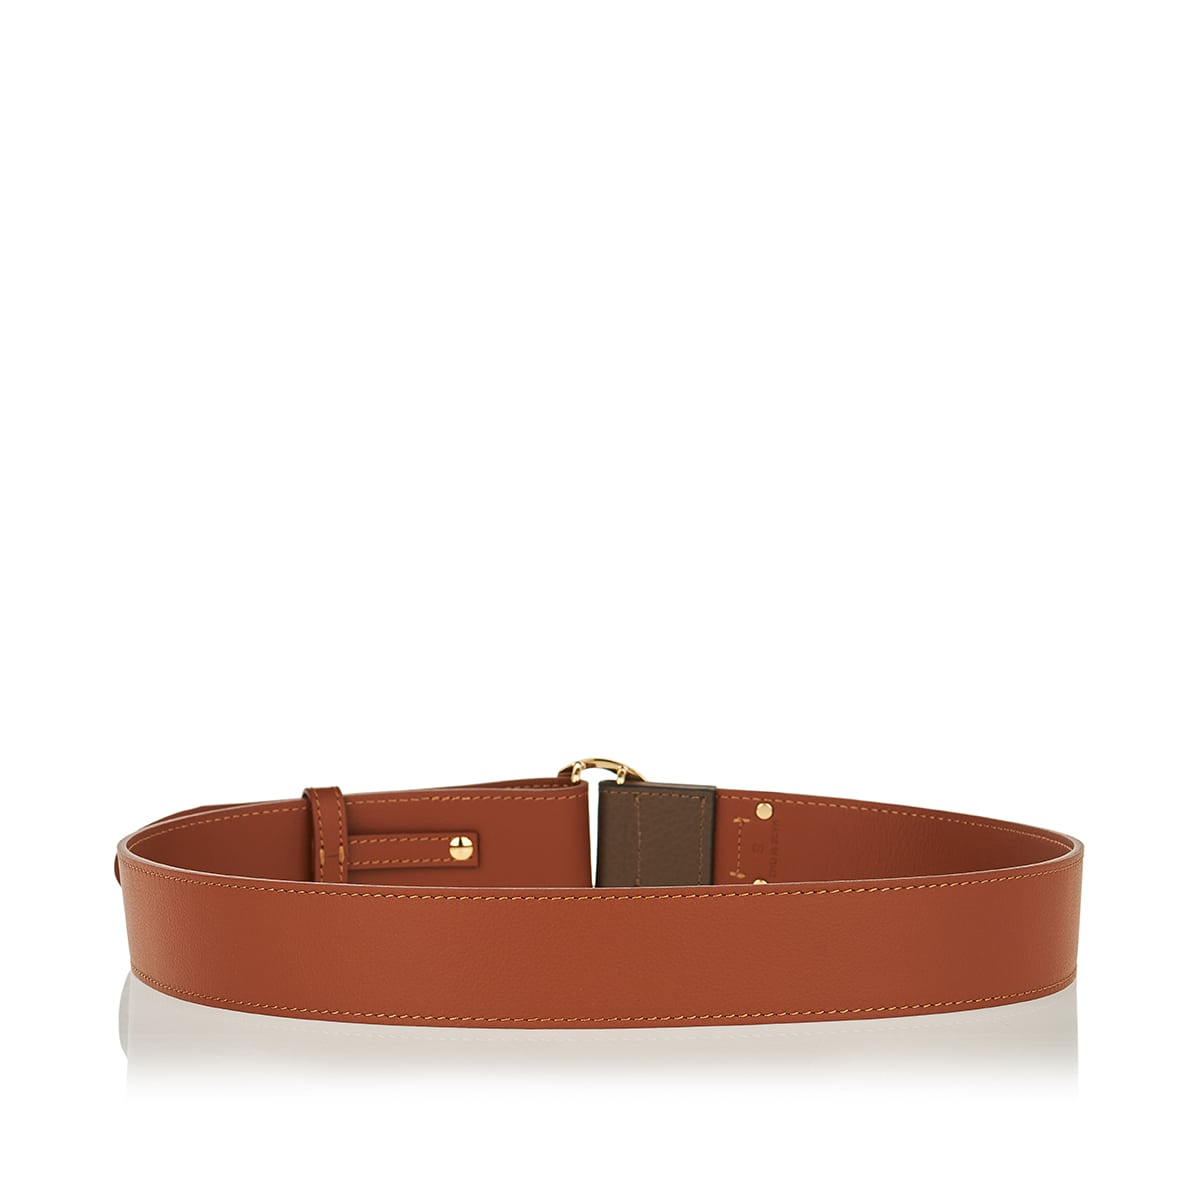 C leather belt